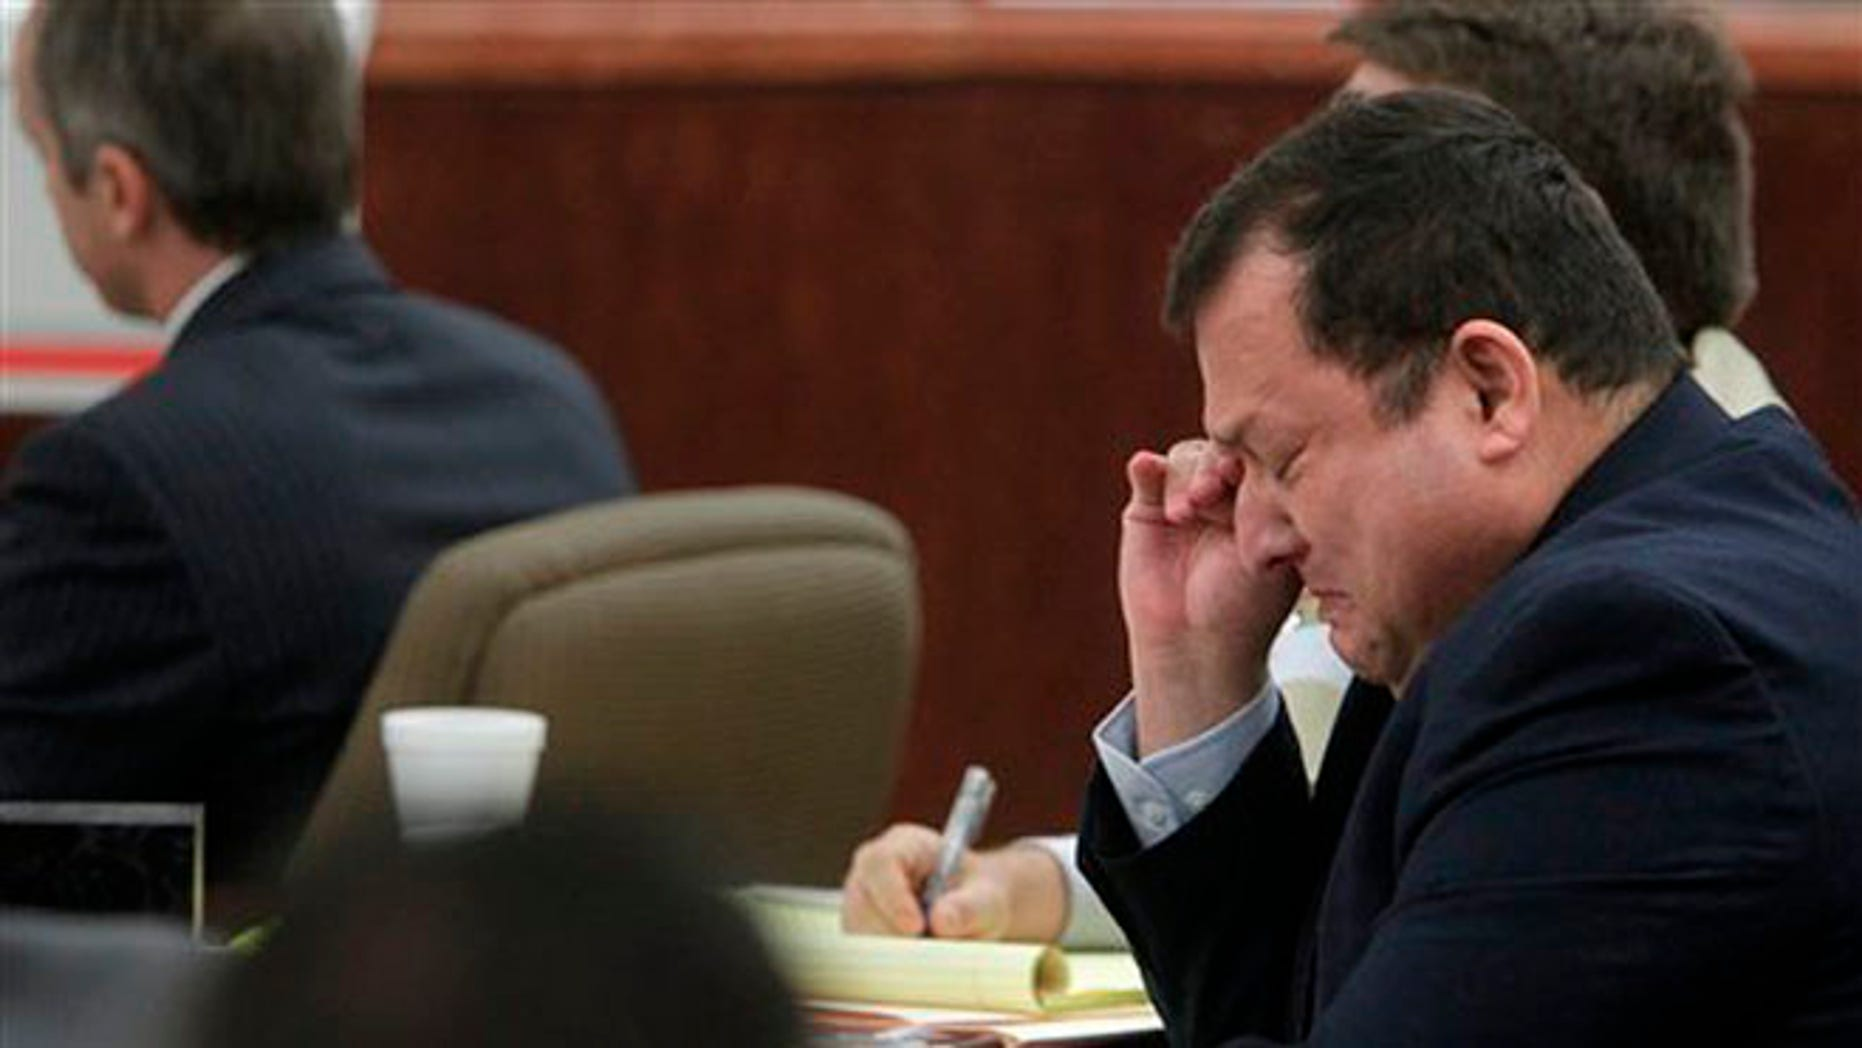 June 25, 2012: Raul Rodriguez weeps in the beginning of his trial at Harris County Criminal Courthouse in Houston.